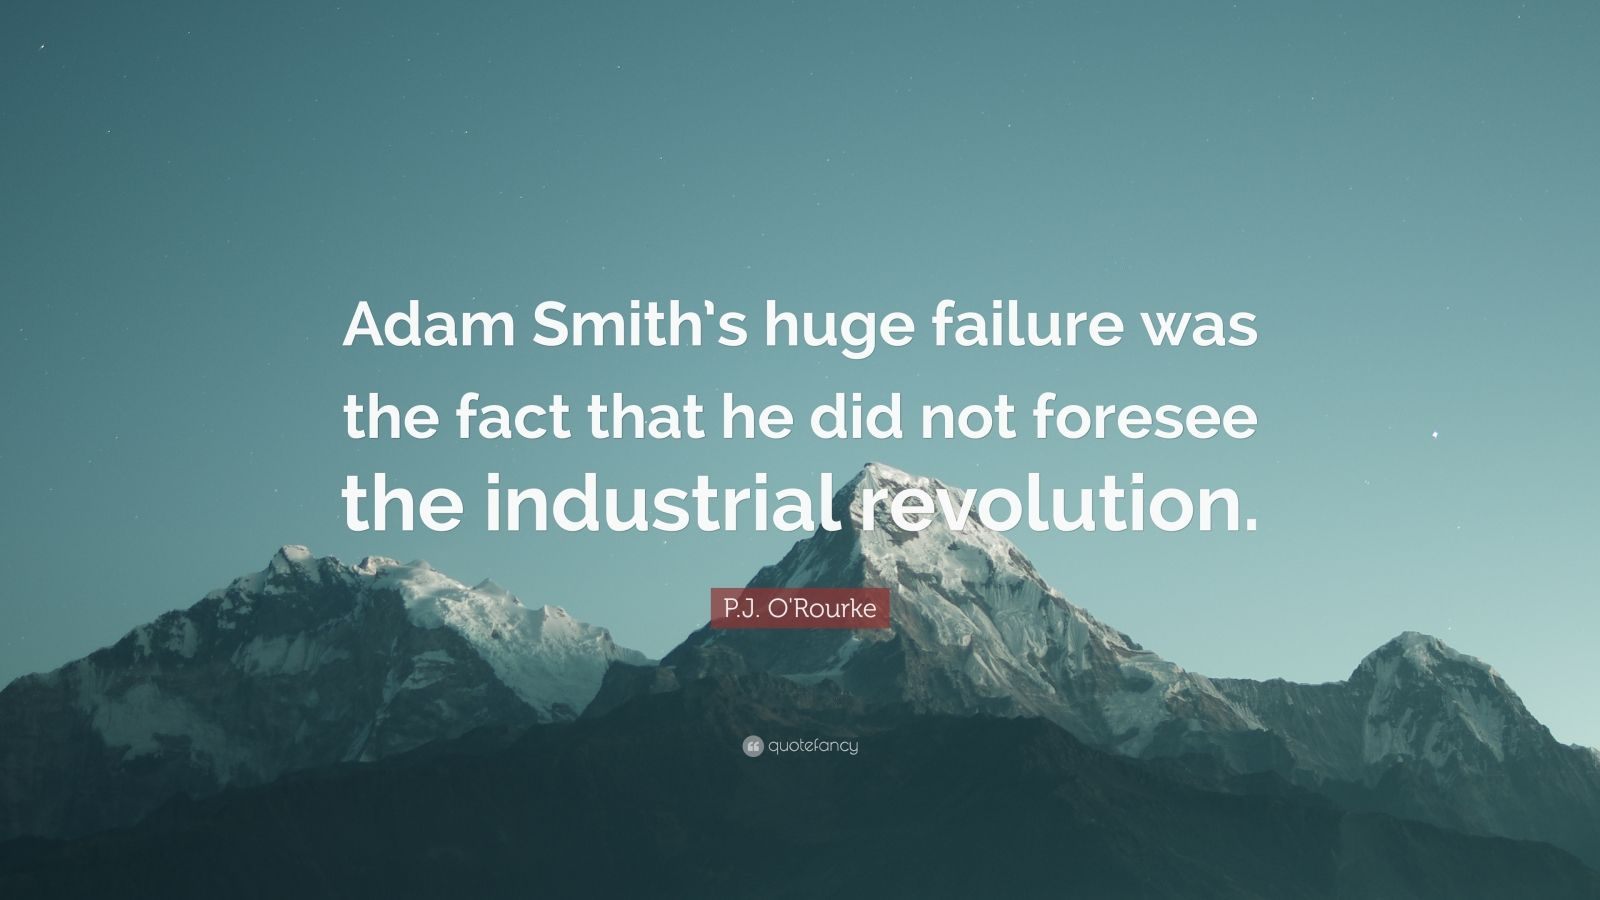 """P.J. O'Rourke Quote: """"Adam Smith's huge failure was the fact that he did not foresee the industrial revolution."""""""